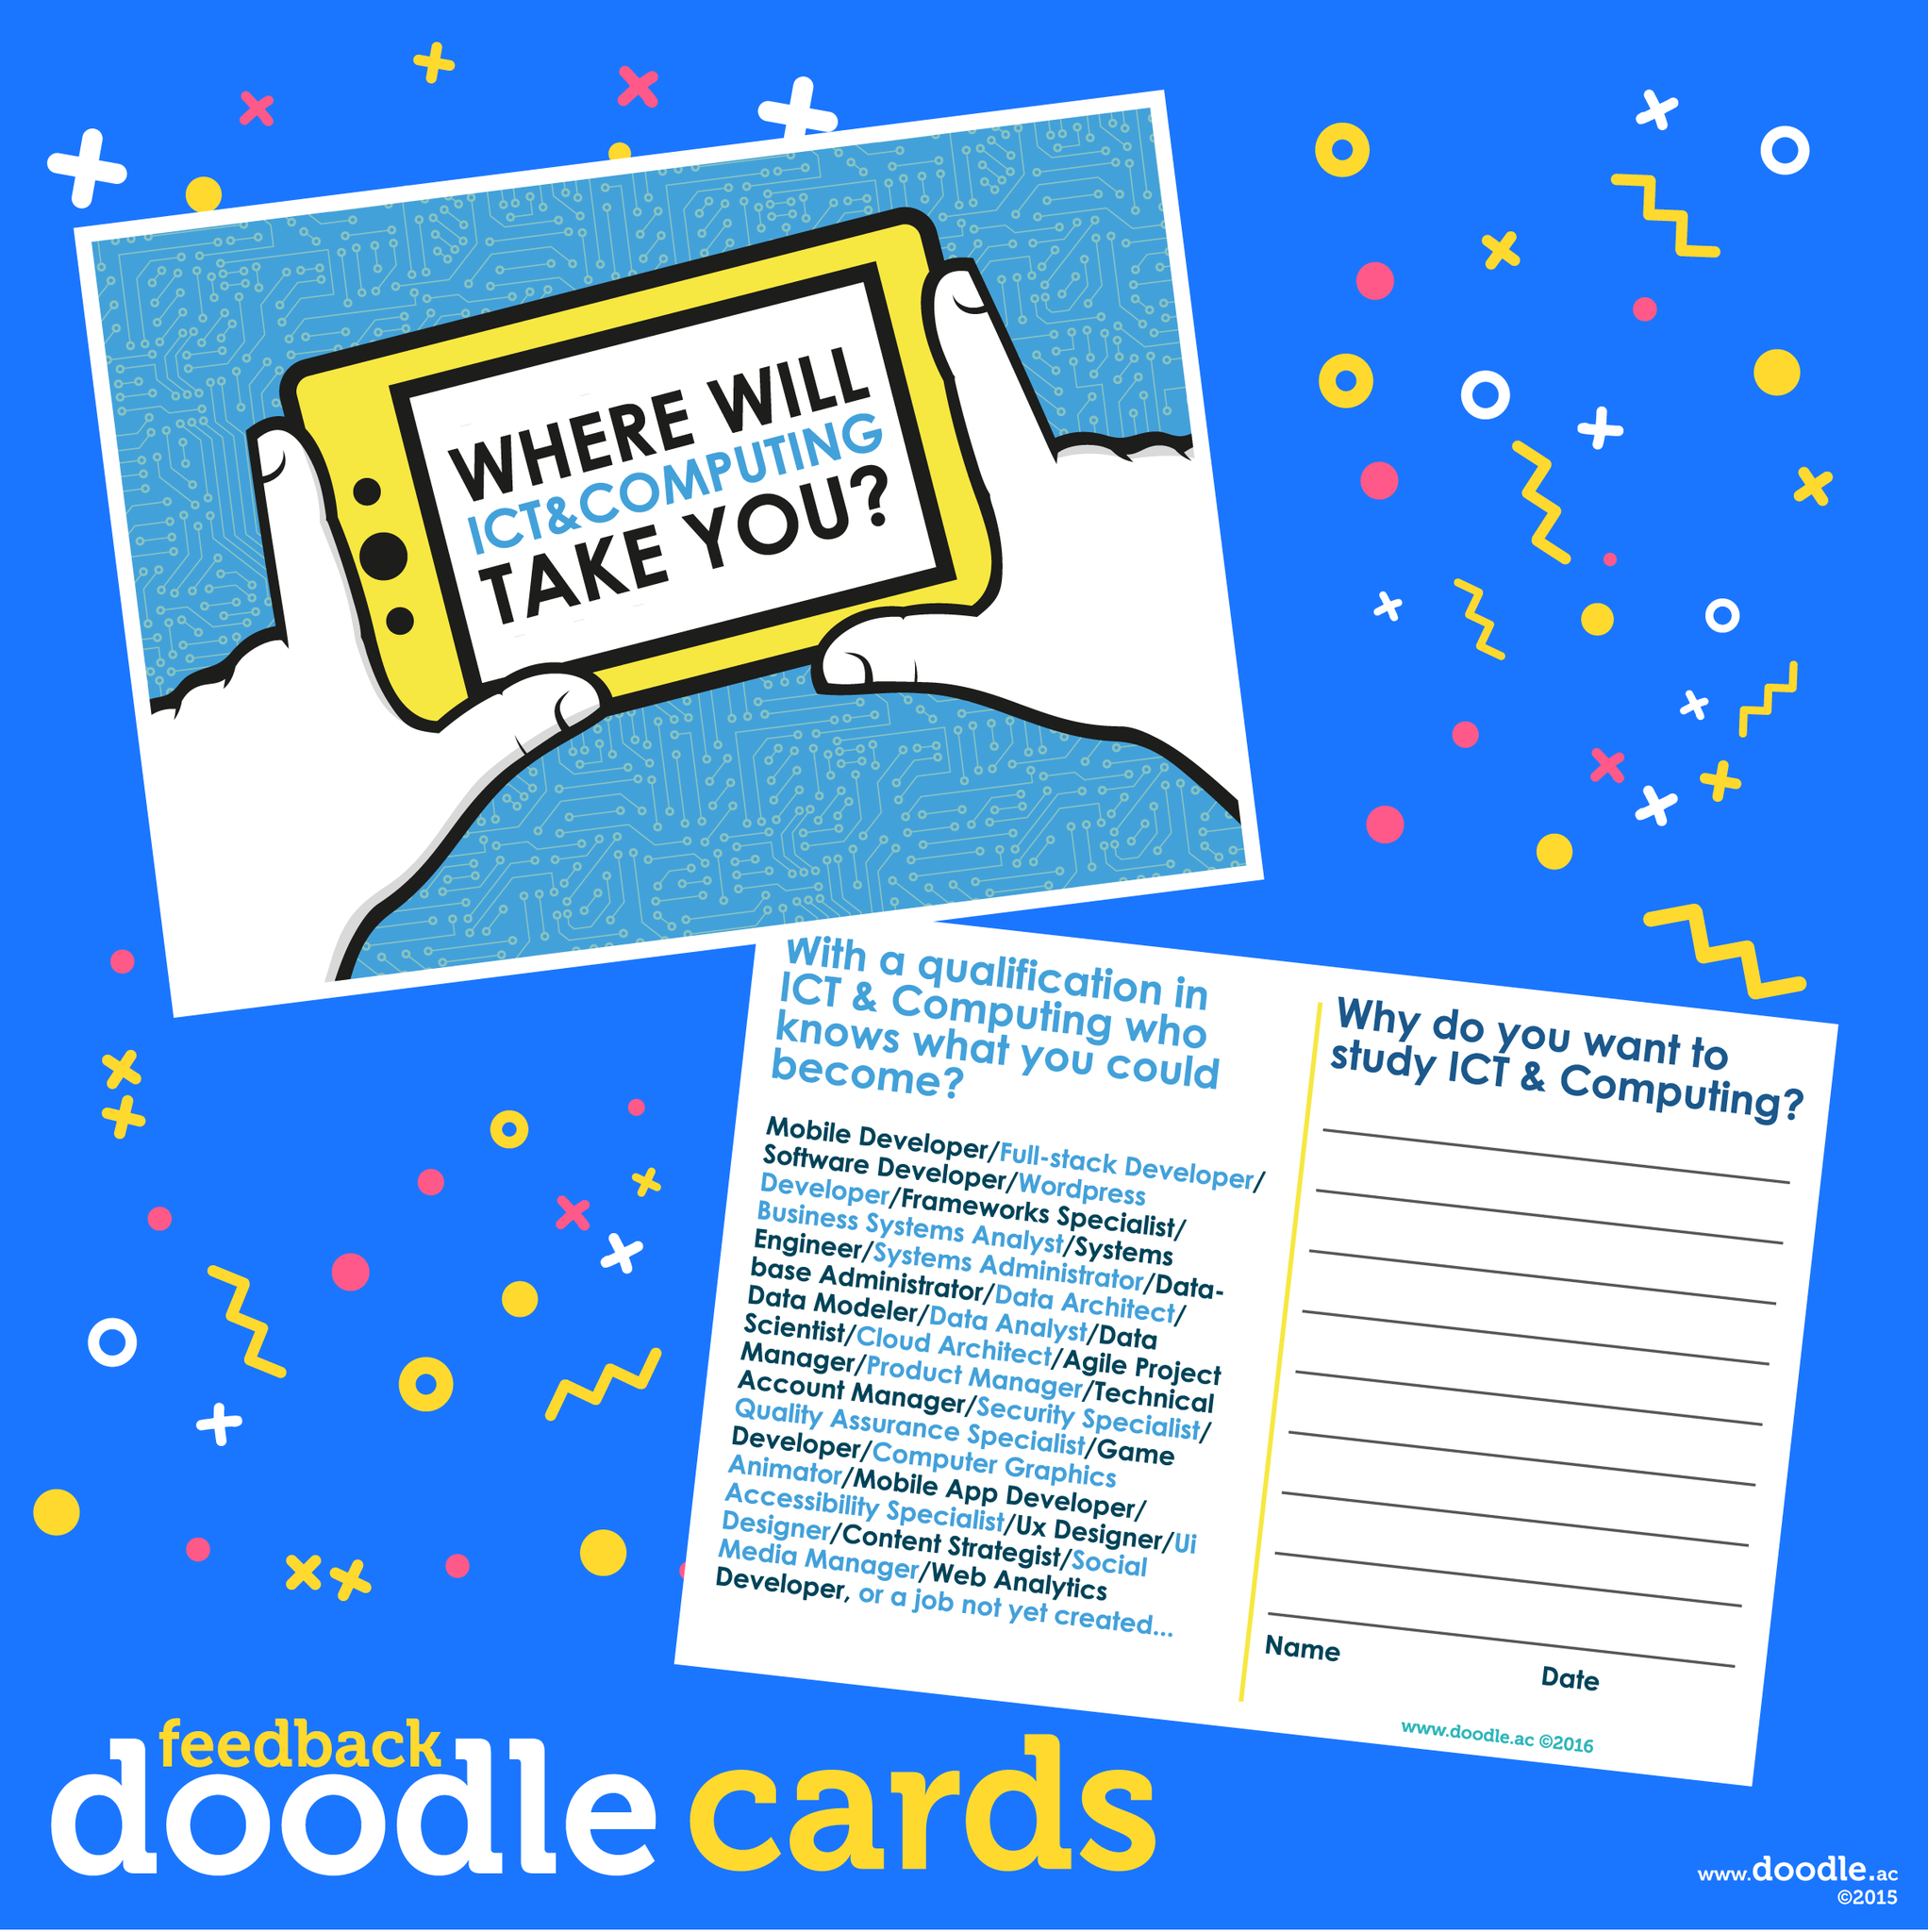 ICT & Computing doodle cards - doodle education